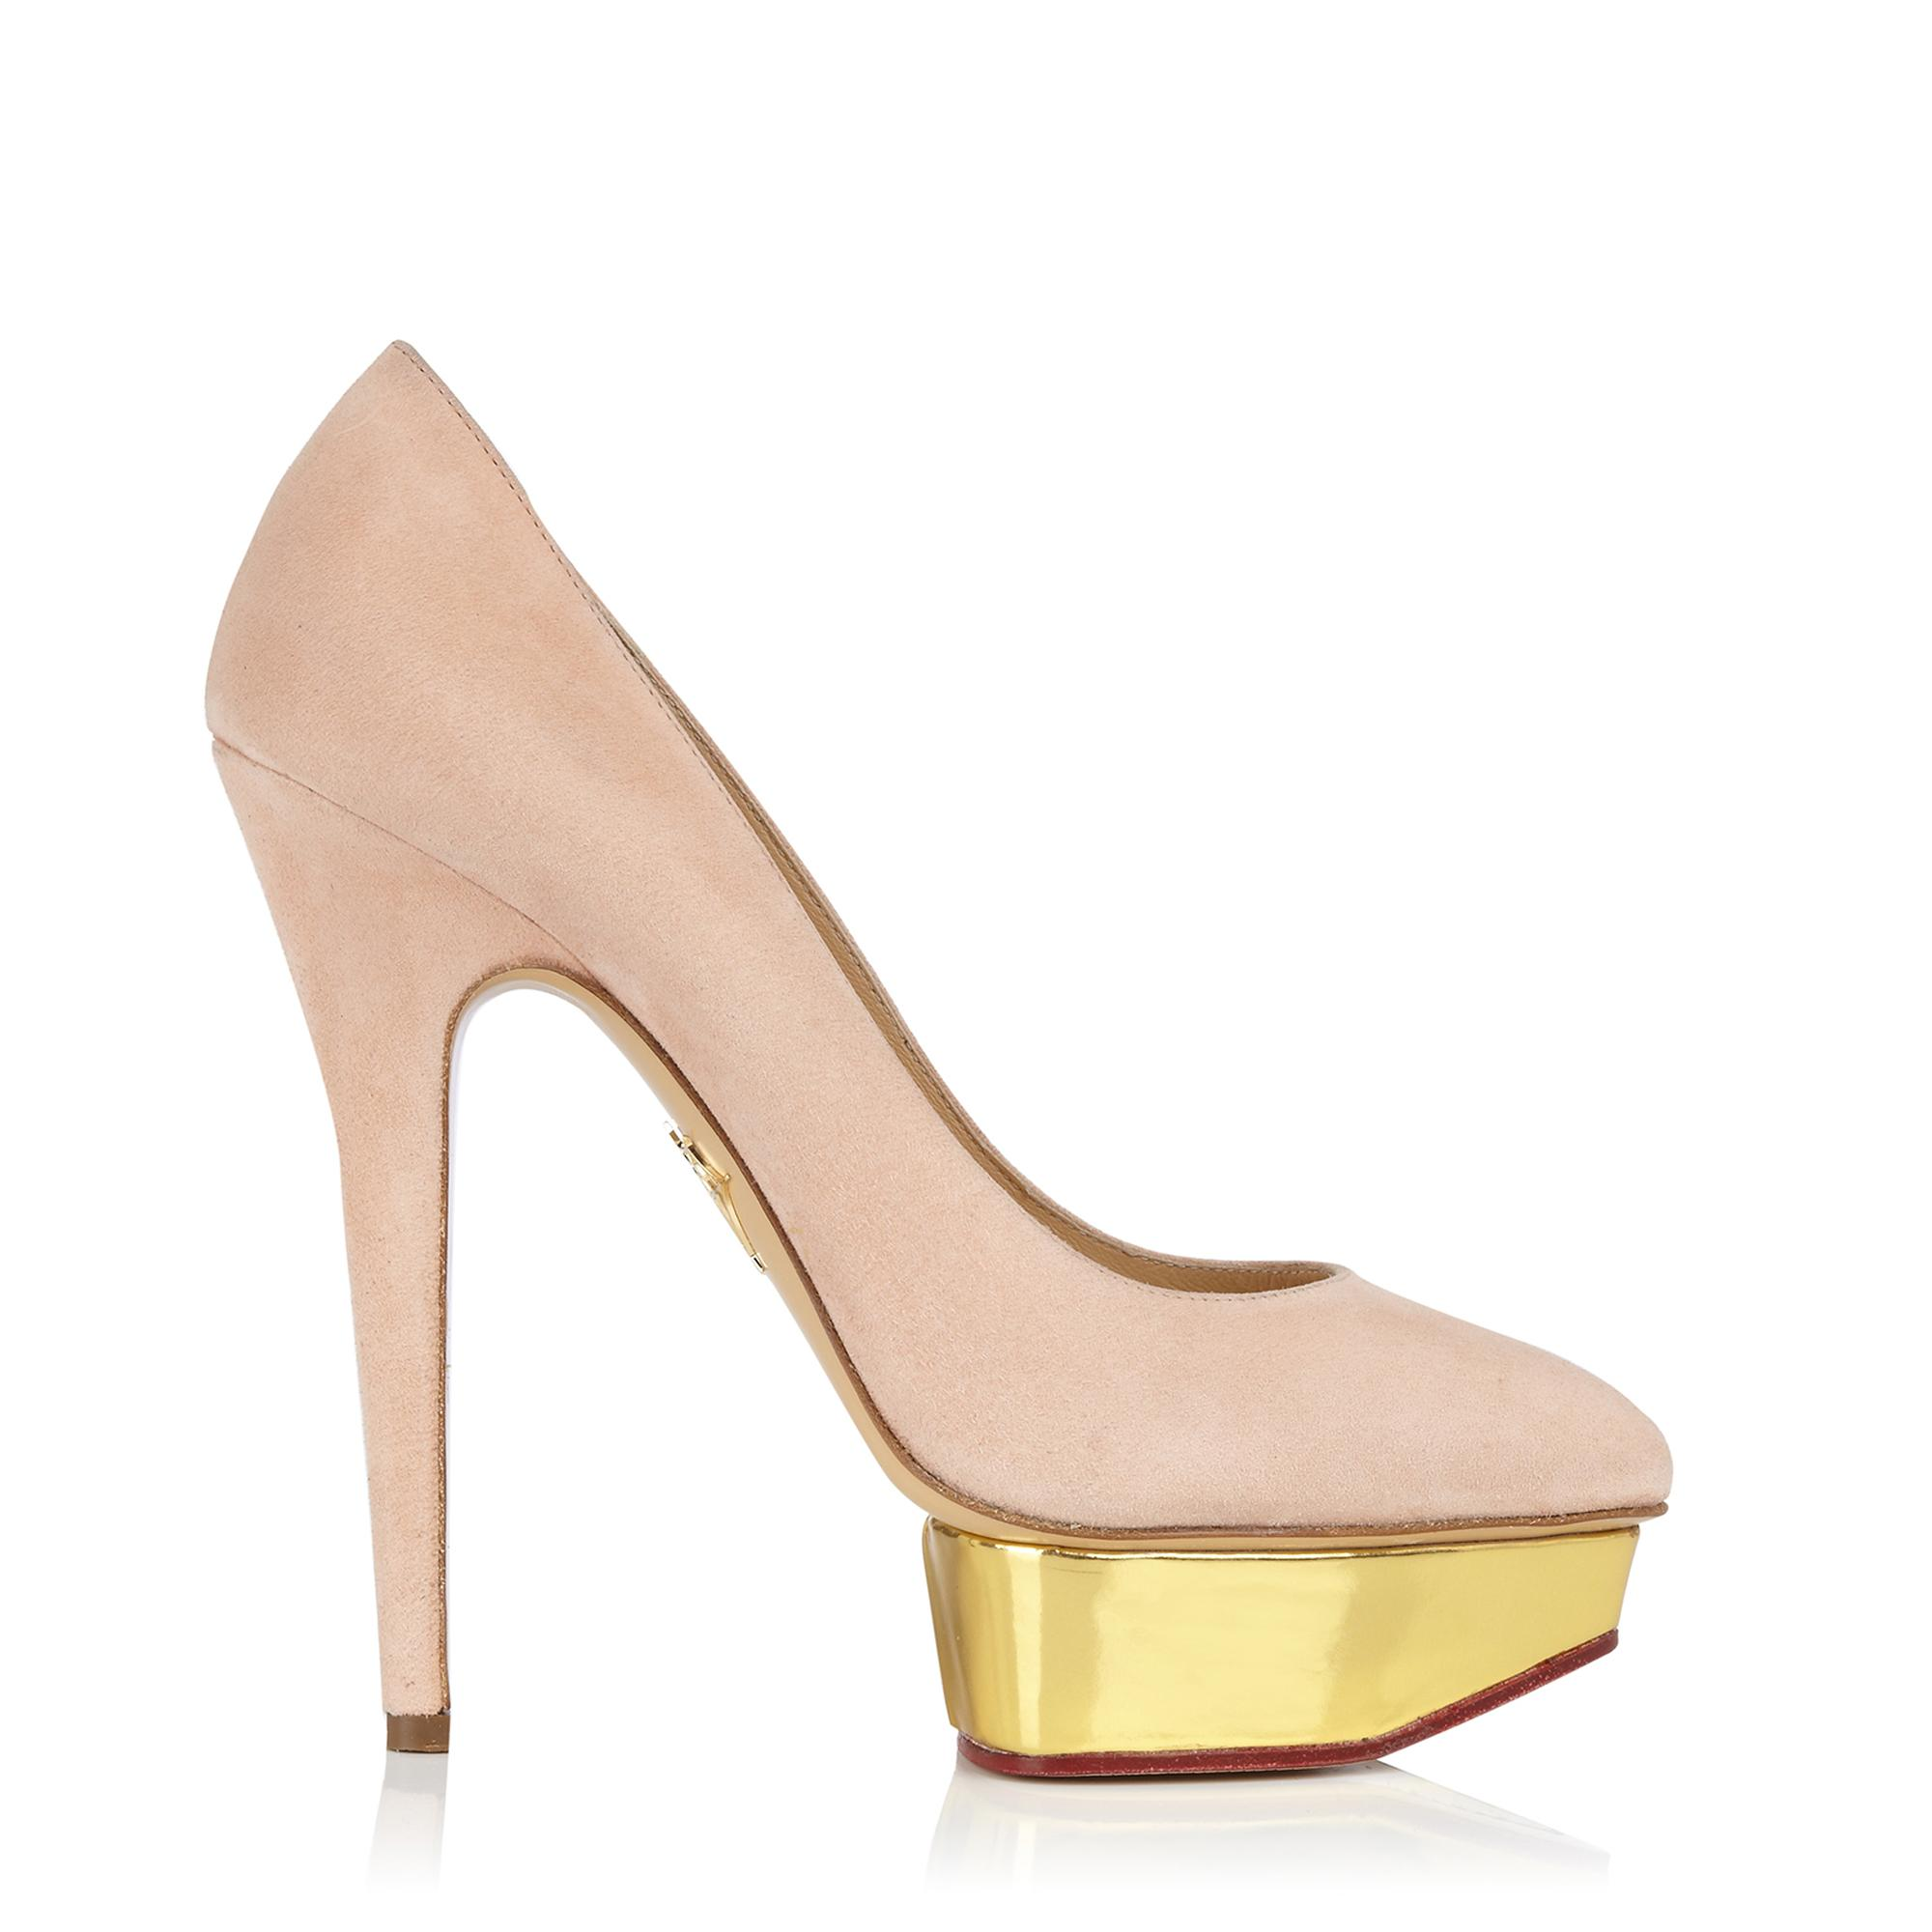 Cindy | Luxury Designer Shoes & Handbags | Charlotte Olympia